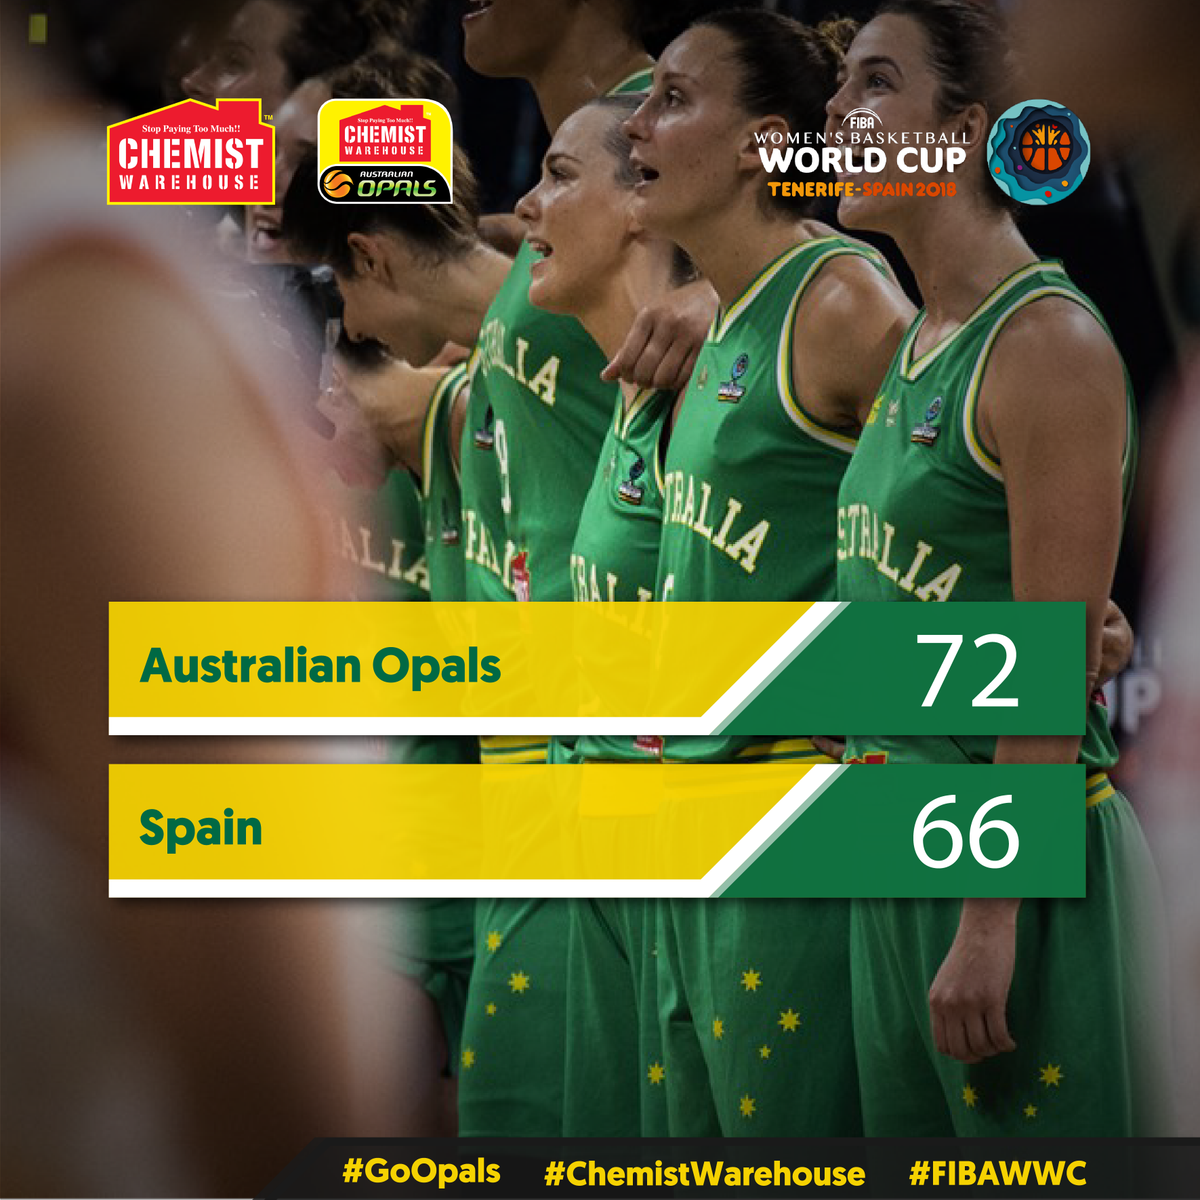 The  Opals are headed to the  gold medal ga#FIBAWWCme! 🇦🇺 prevail 72-66 on the back of a 22-8 final quarter!    had 33pts, 15rebs,  had 10pts and  added 9pts, 11rebs!   #GoOpals #ChemistWarehouse